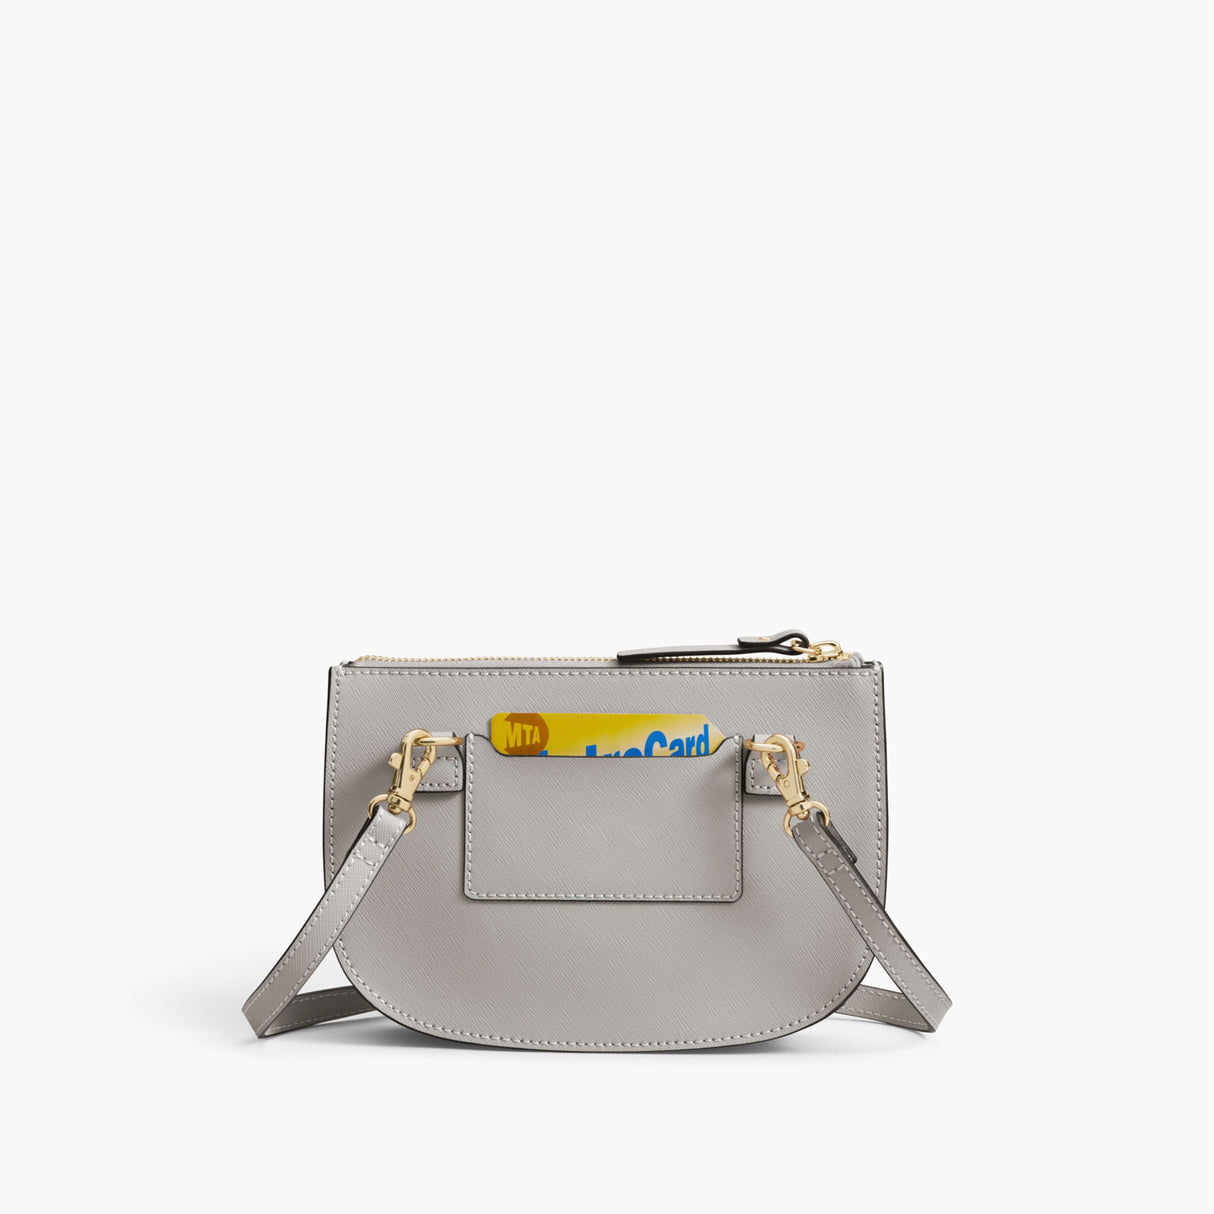 Back Card Slot - The Waverley 2 - Saffiano Leather - Light Grey / Gold / Grey - Crossbody - Lo & Sons